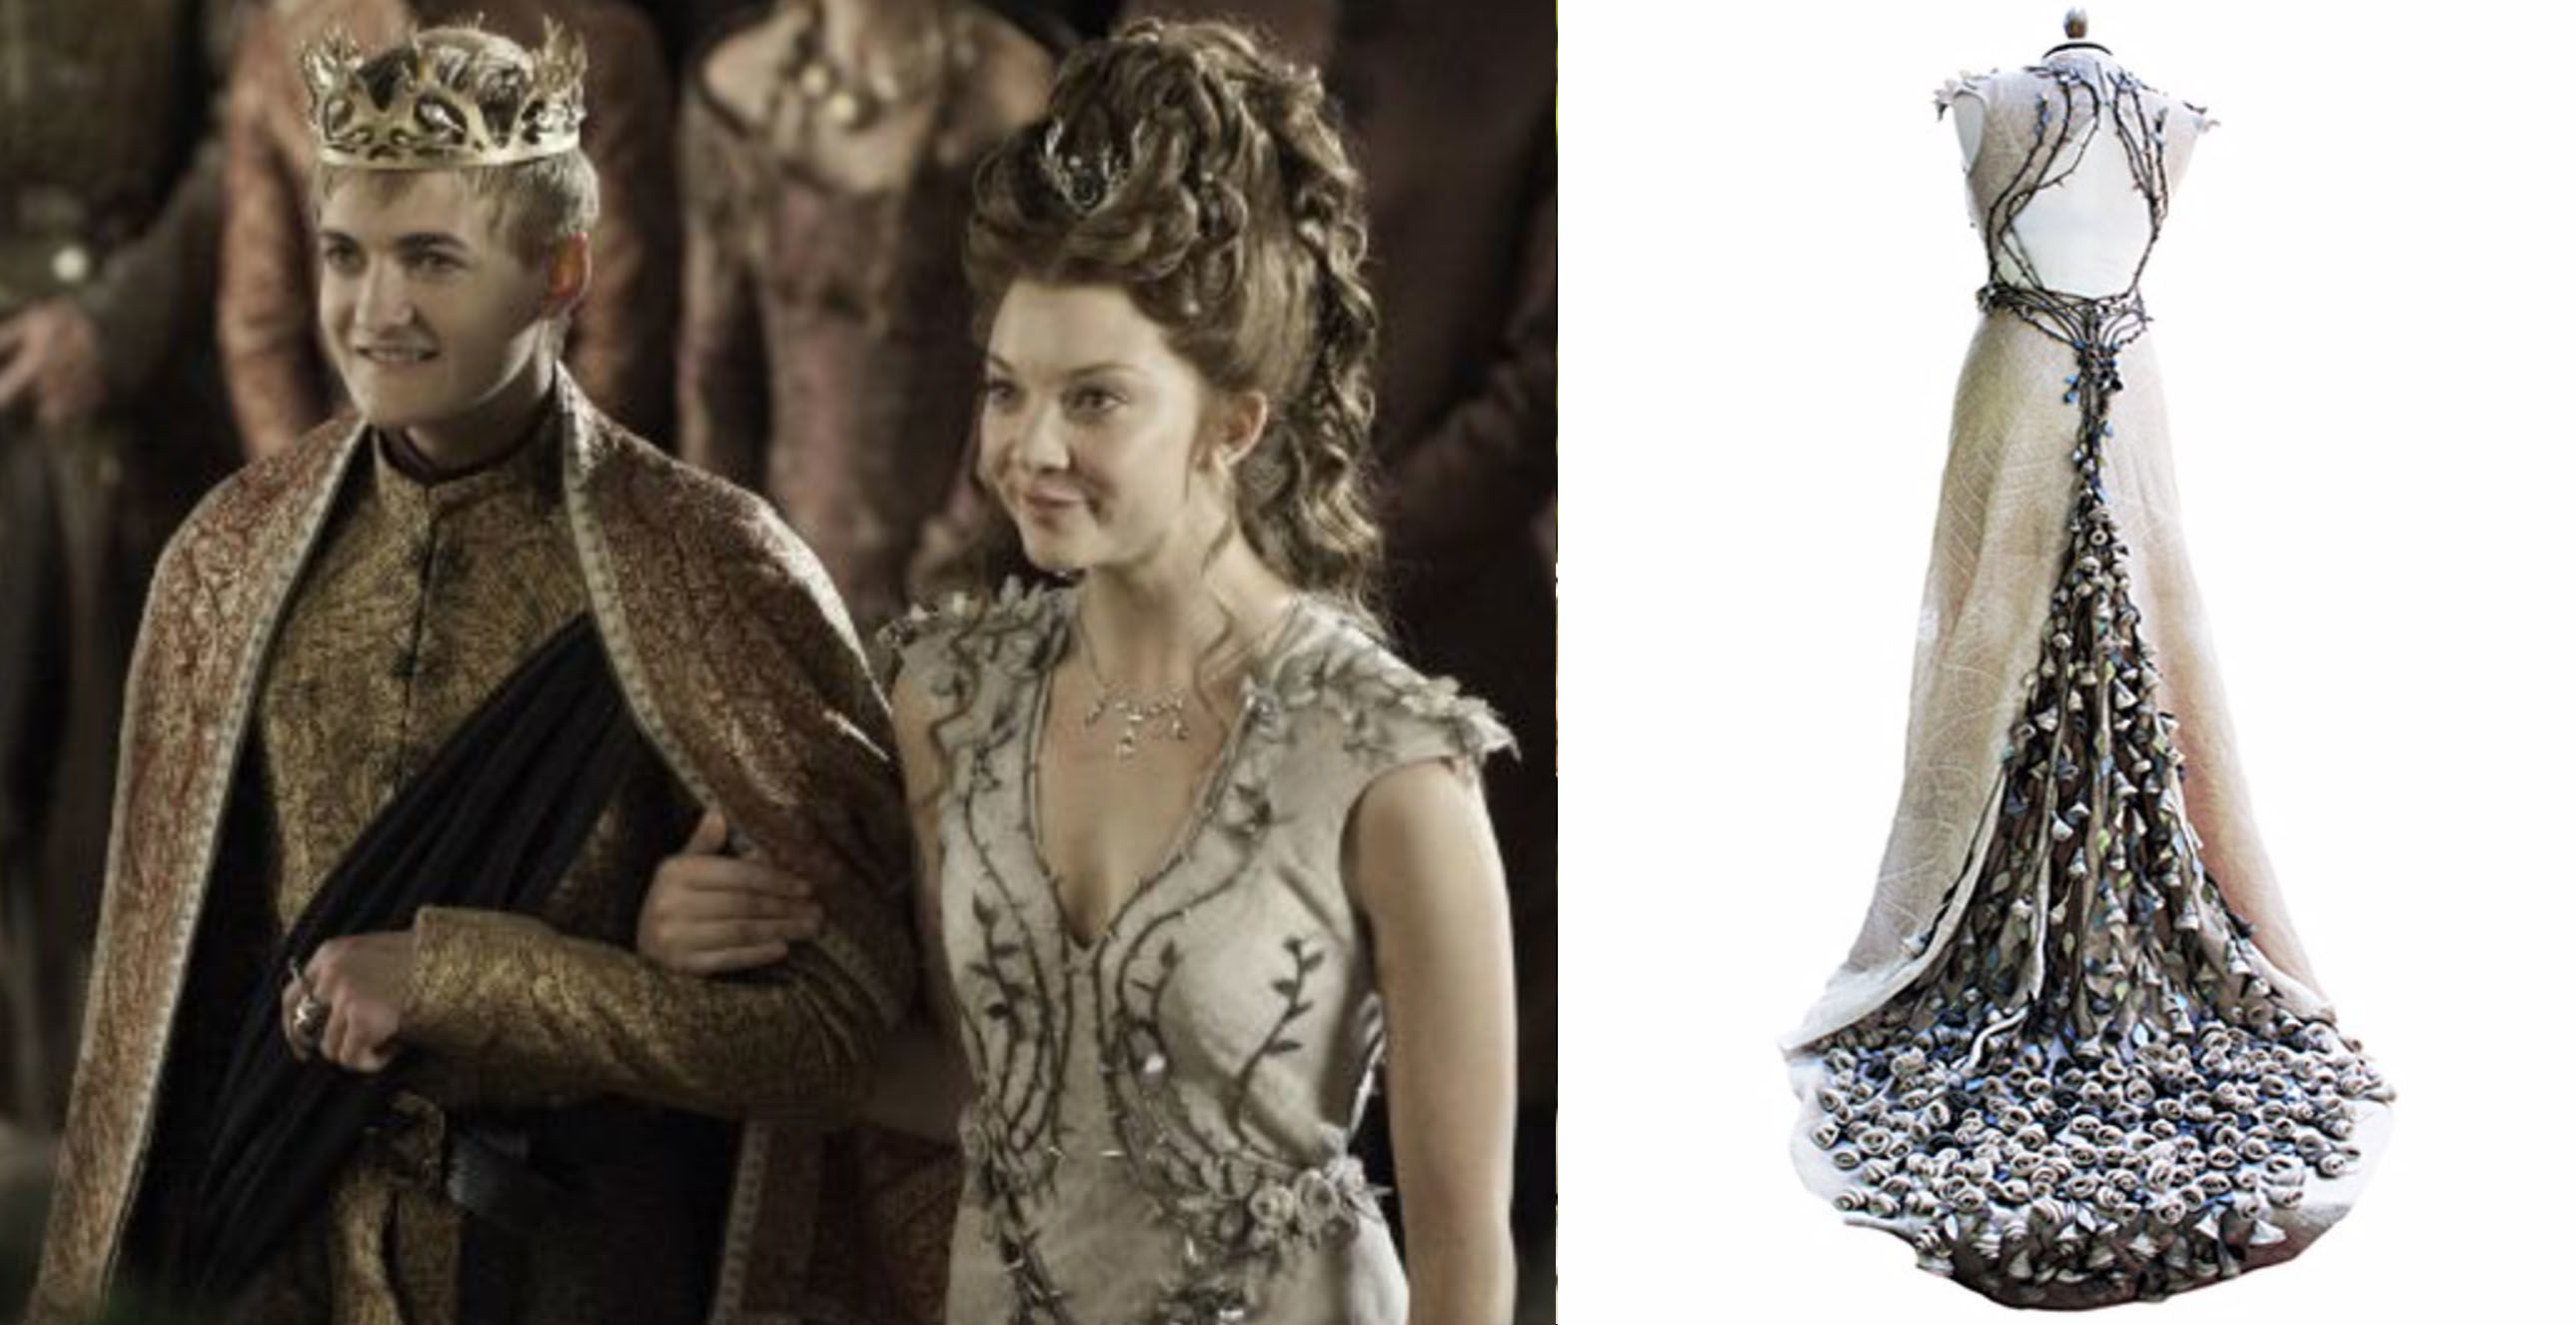 Games Of Thrones Countdown Of The 12 Most Amazing Costumes Before Season 8